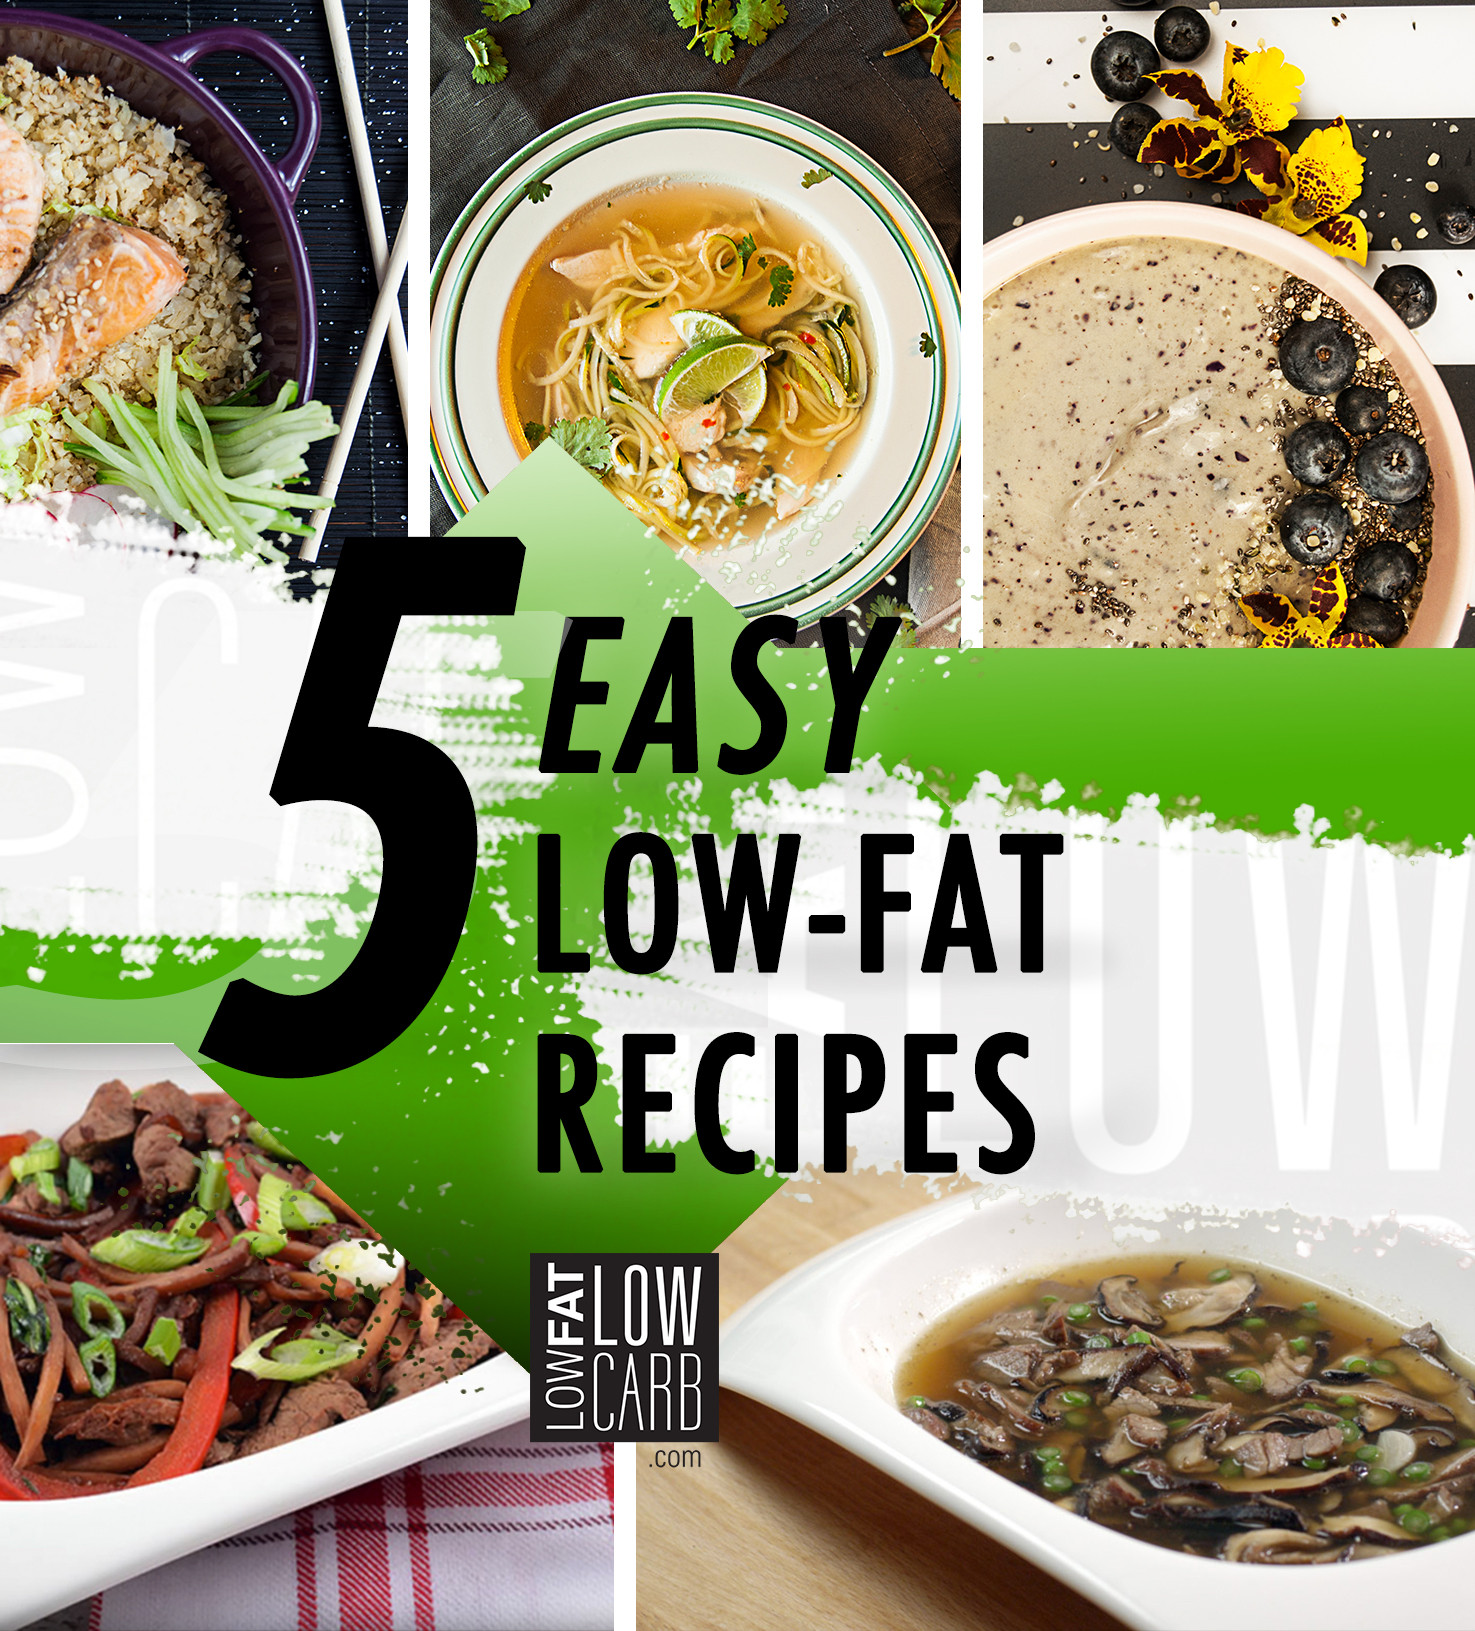 Low Fat Diet Recipes  5 Low Fat Diet Recipes for a Healthy Start Low Fat Low Carb